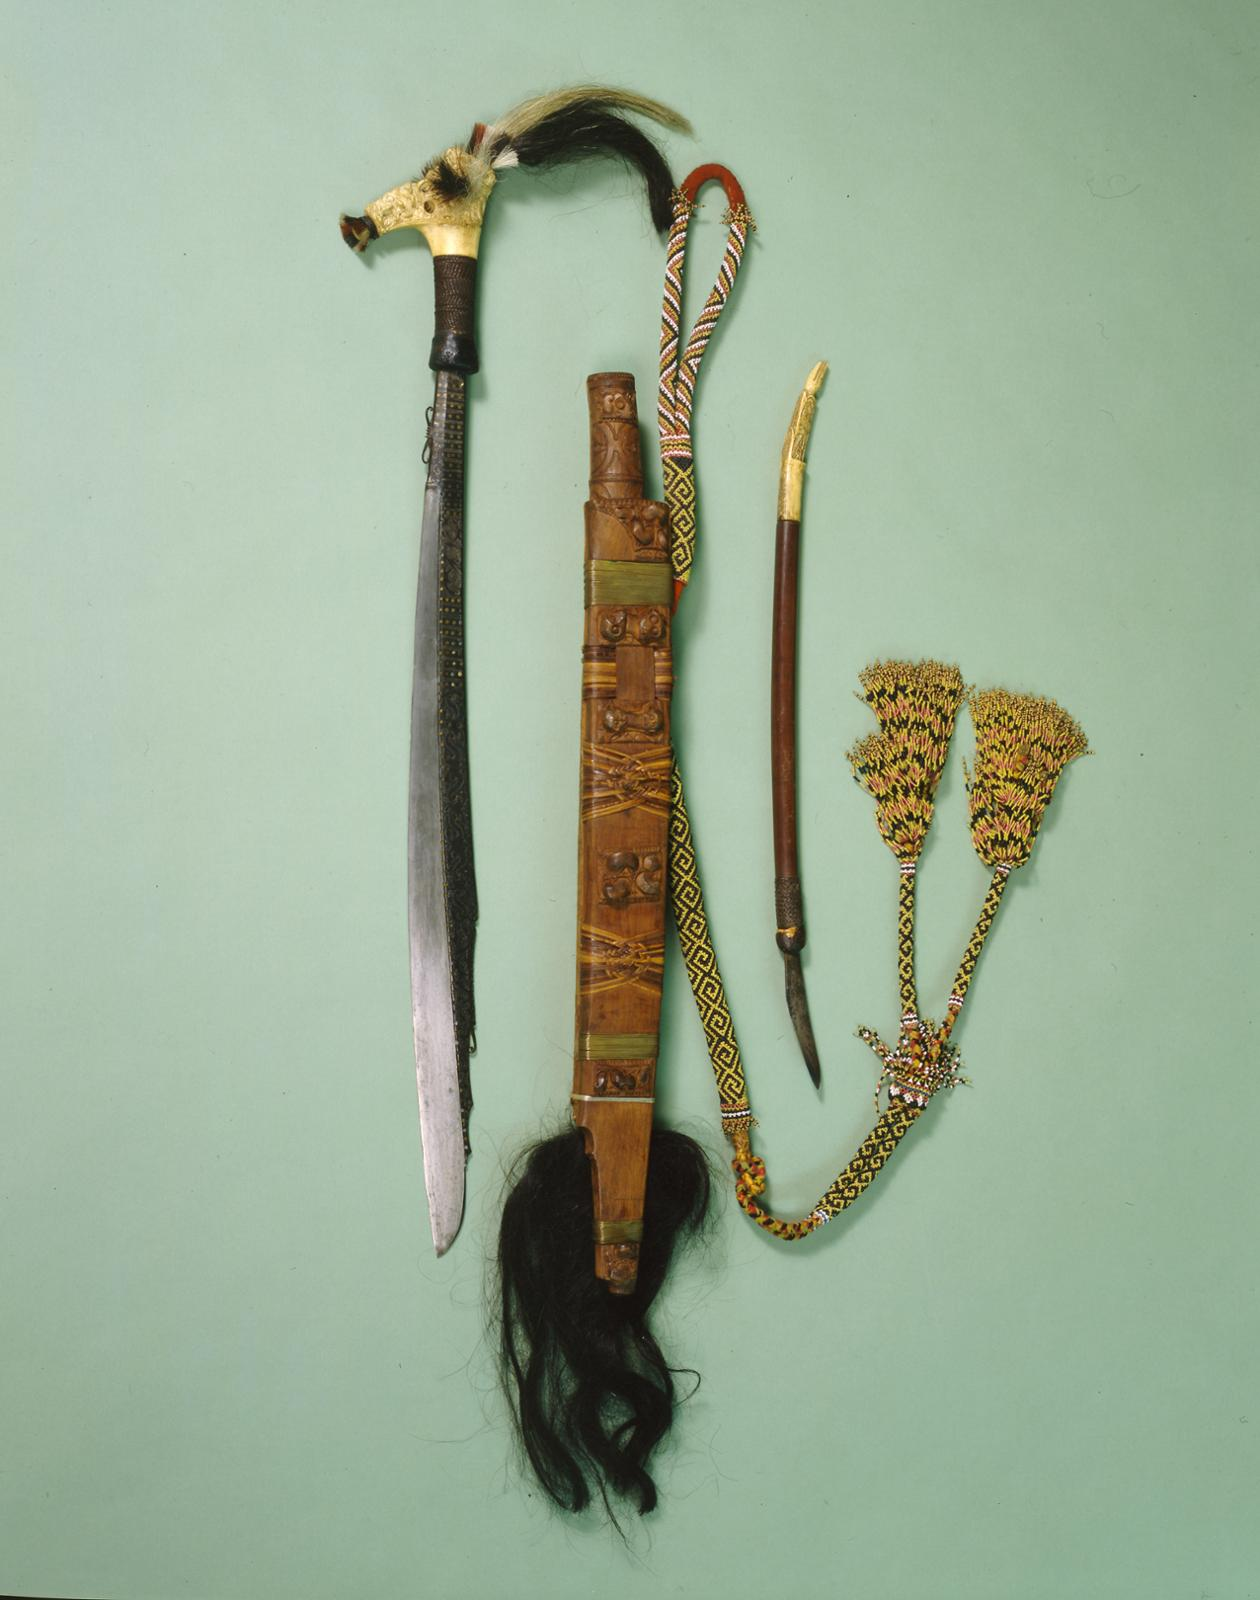 Sword   Mandau   Gift of Dr. William H. Furness 3rd, 1898   Object #: P1232A   Penn Museum